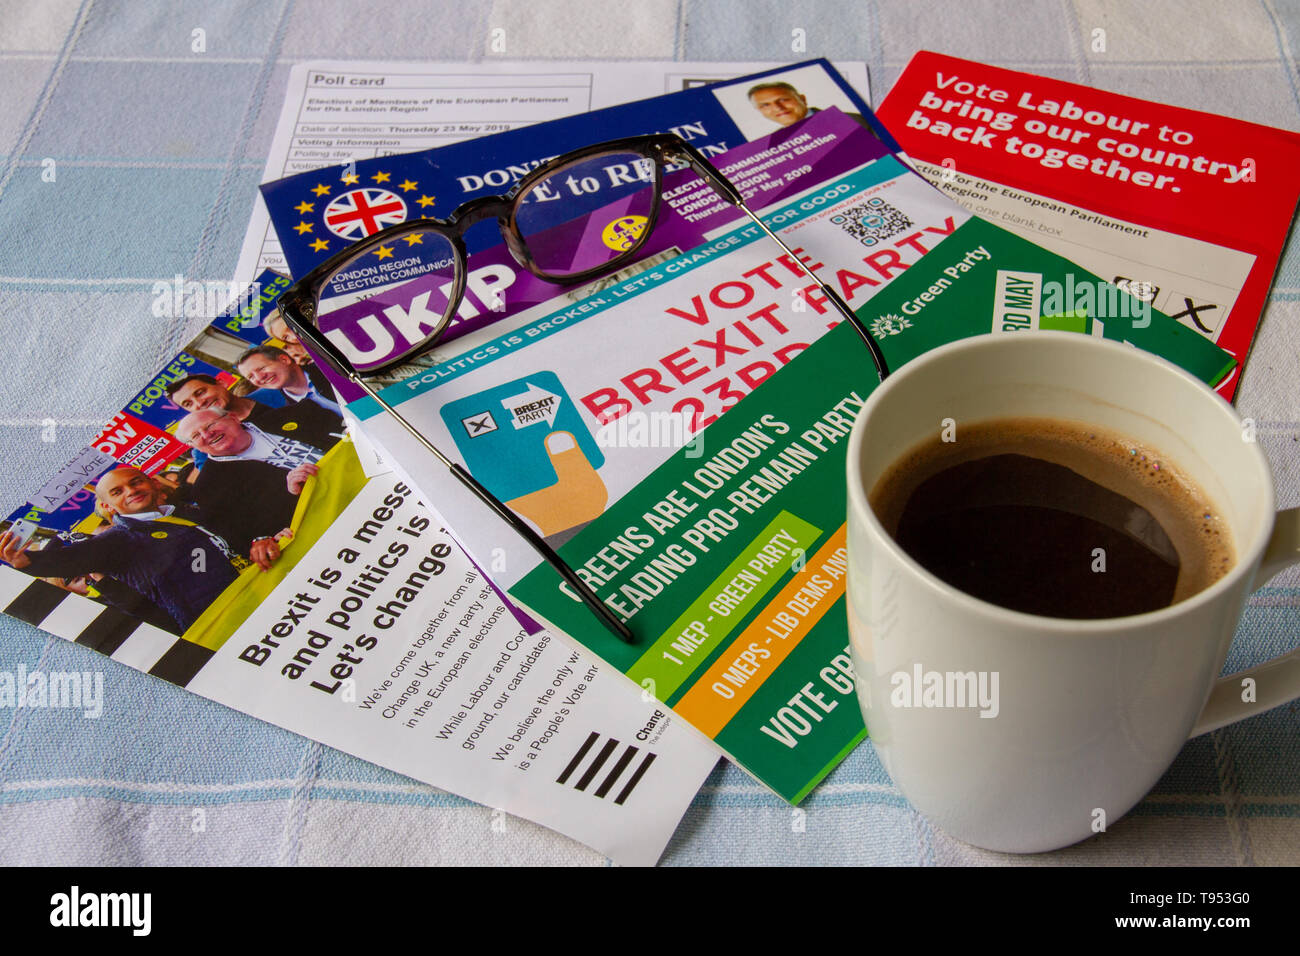 Mug of black coffee and glasses on top of European Parliament Election leaflets - Stock Image